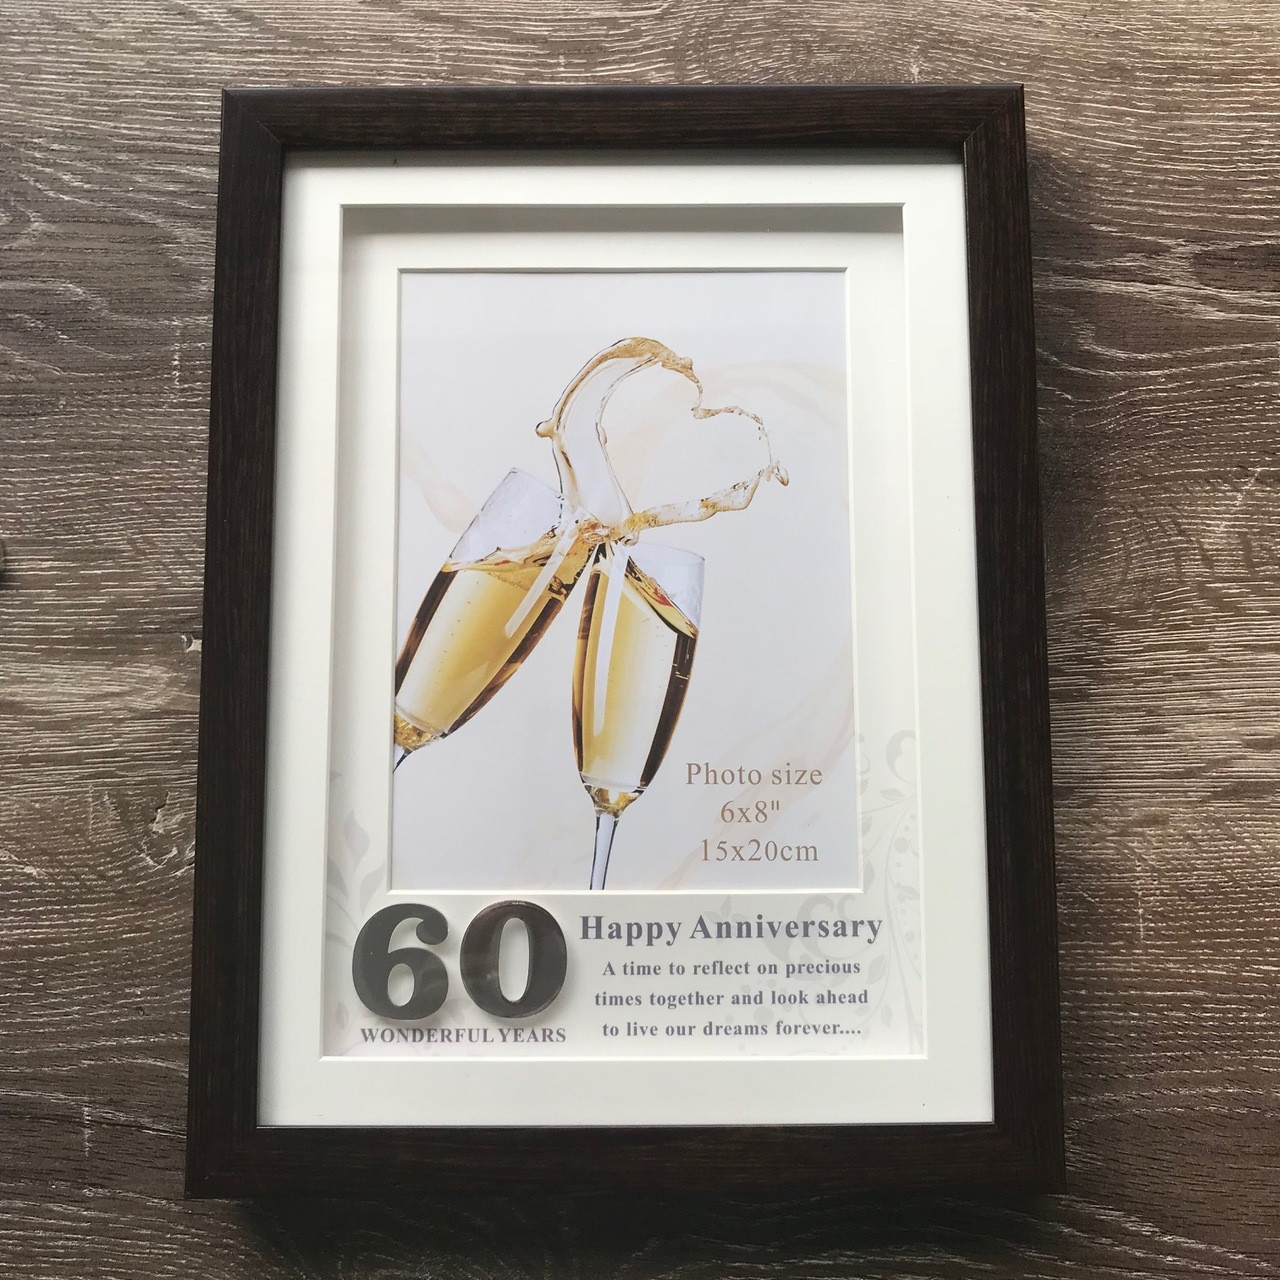 60th Wedding Anniversary Photo Frame By Gifted Memories